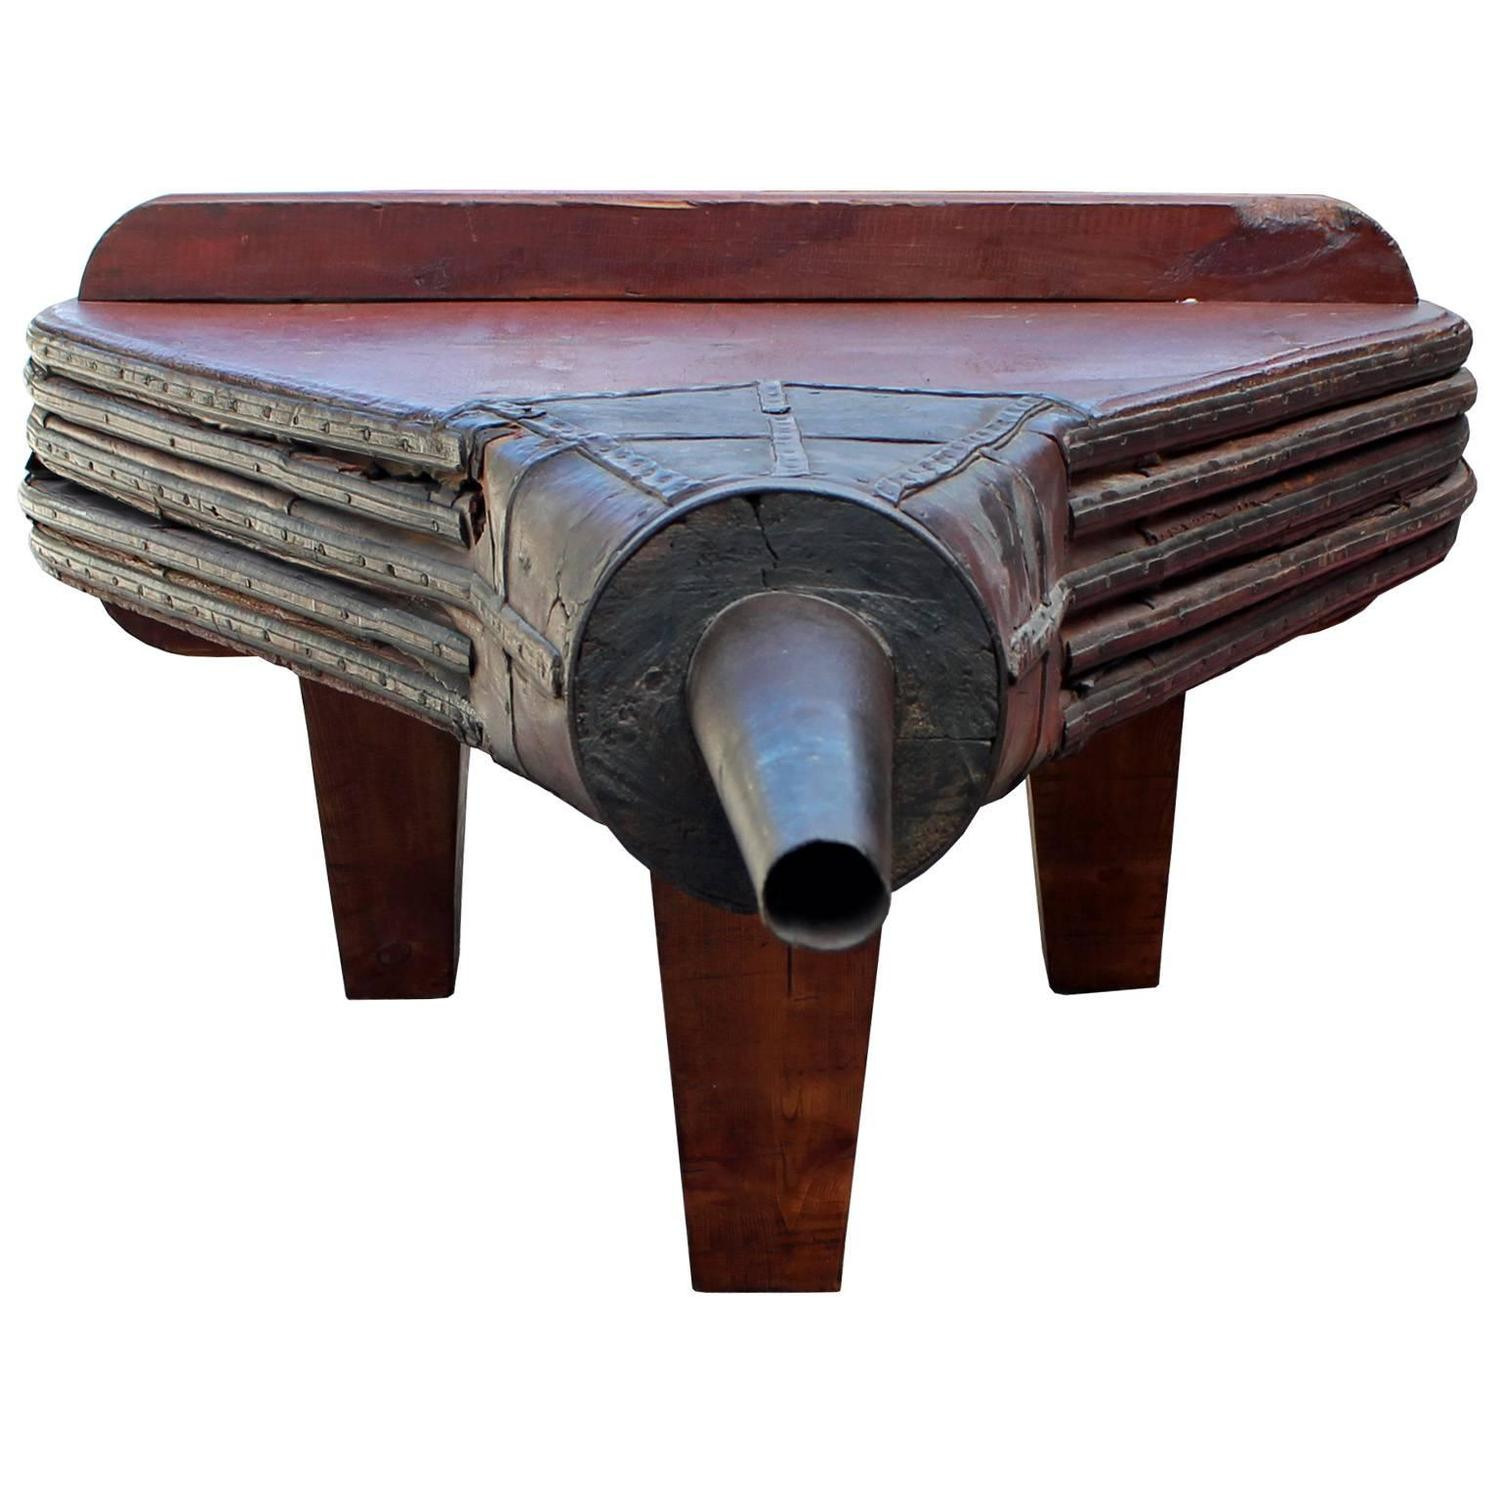 Unusual Three Legged Bellows Coffee Table For Sale At 1stdibs